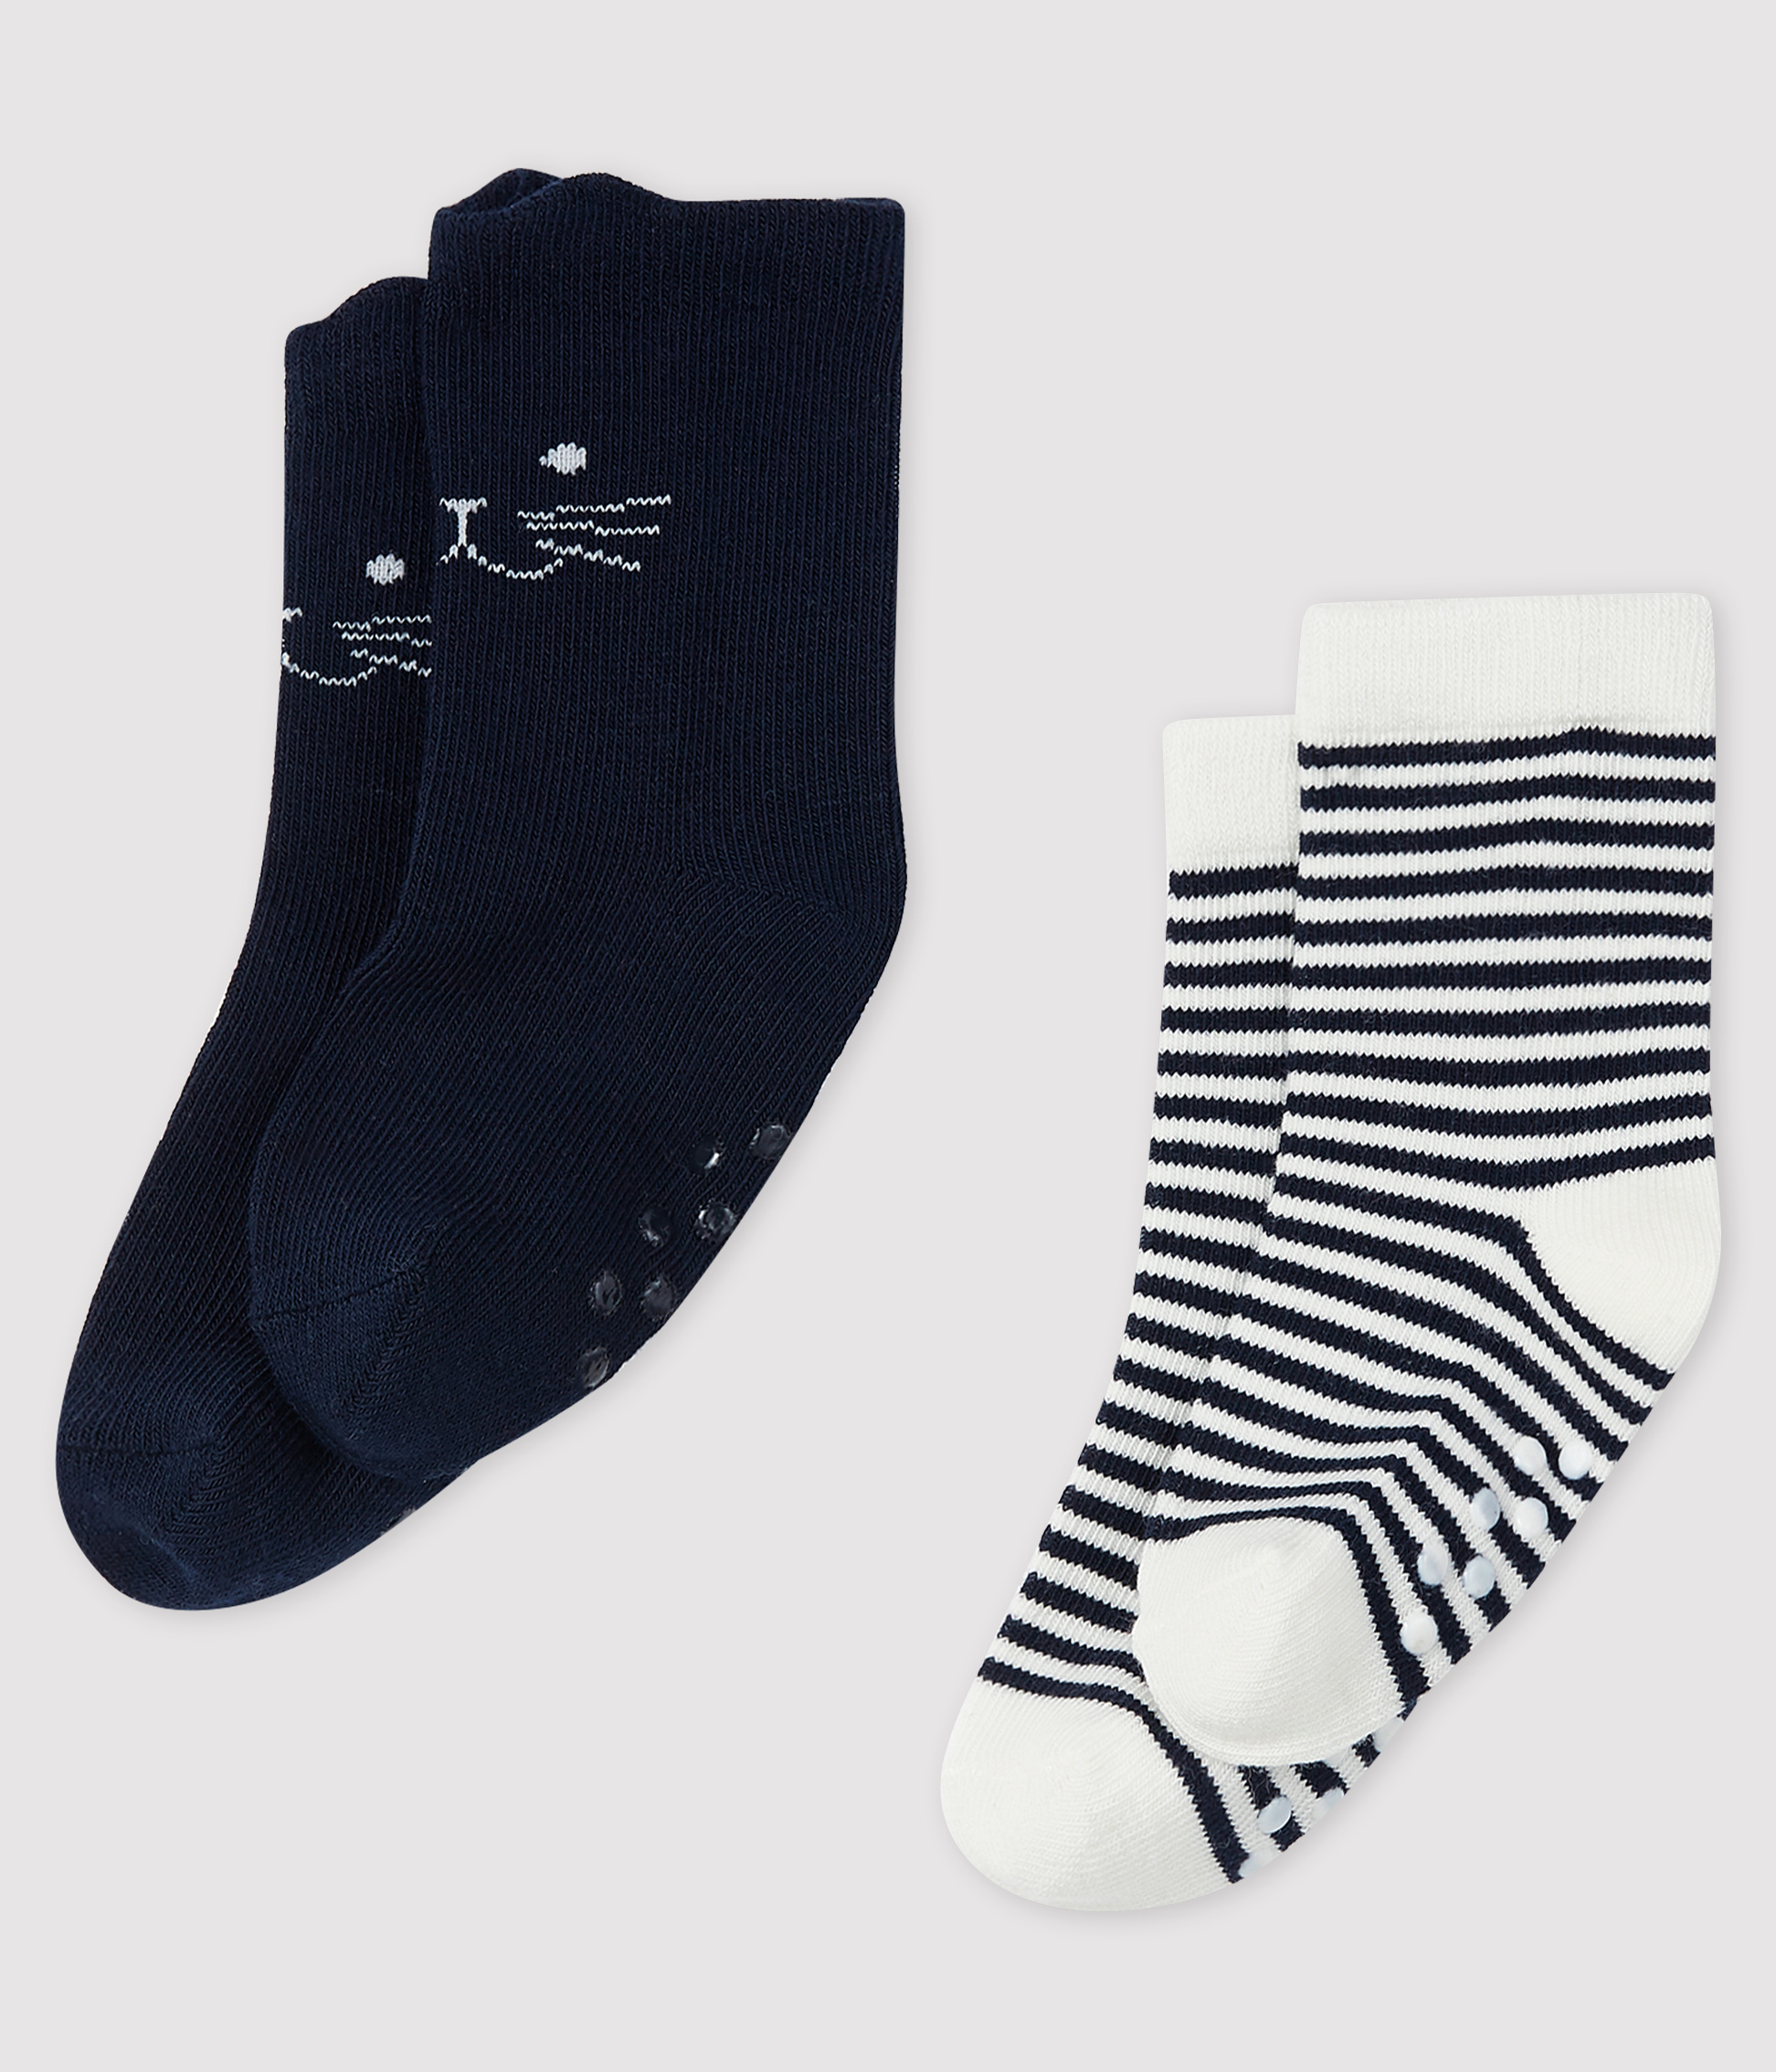 Pack of 2 pairs of socks for babies.